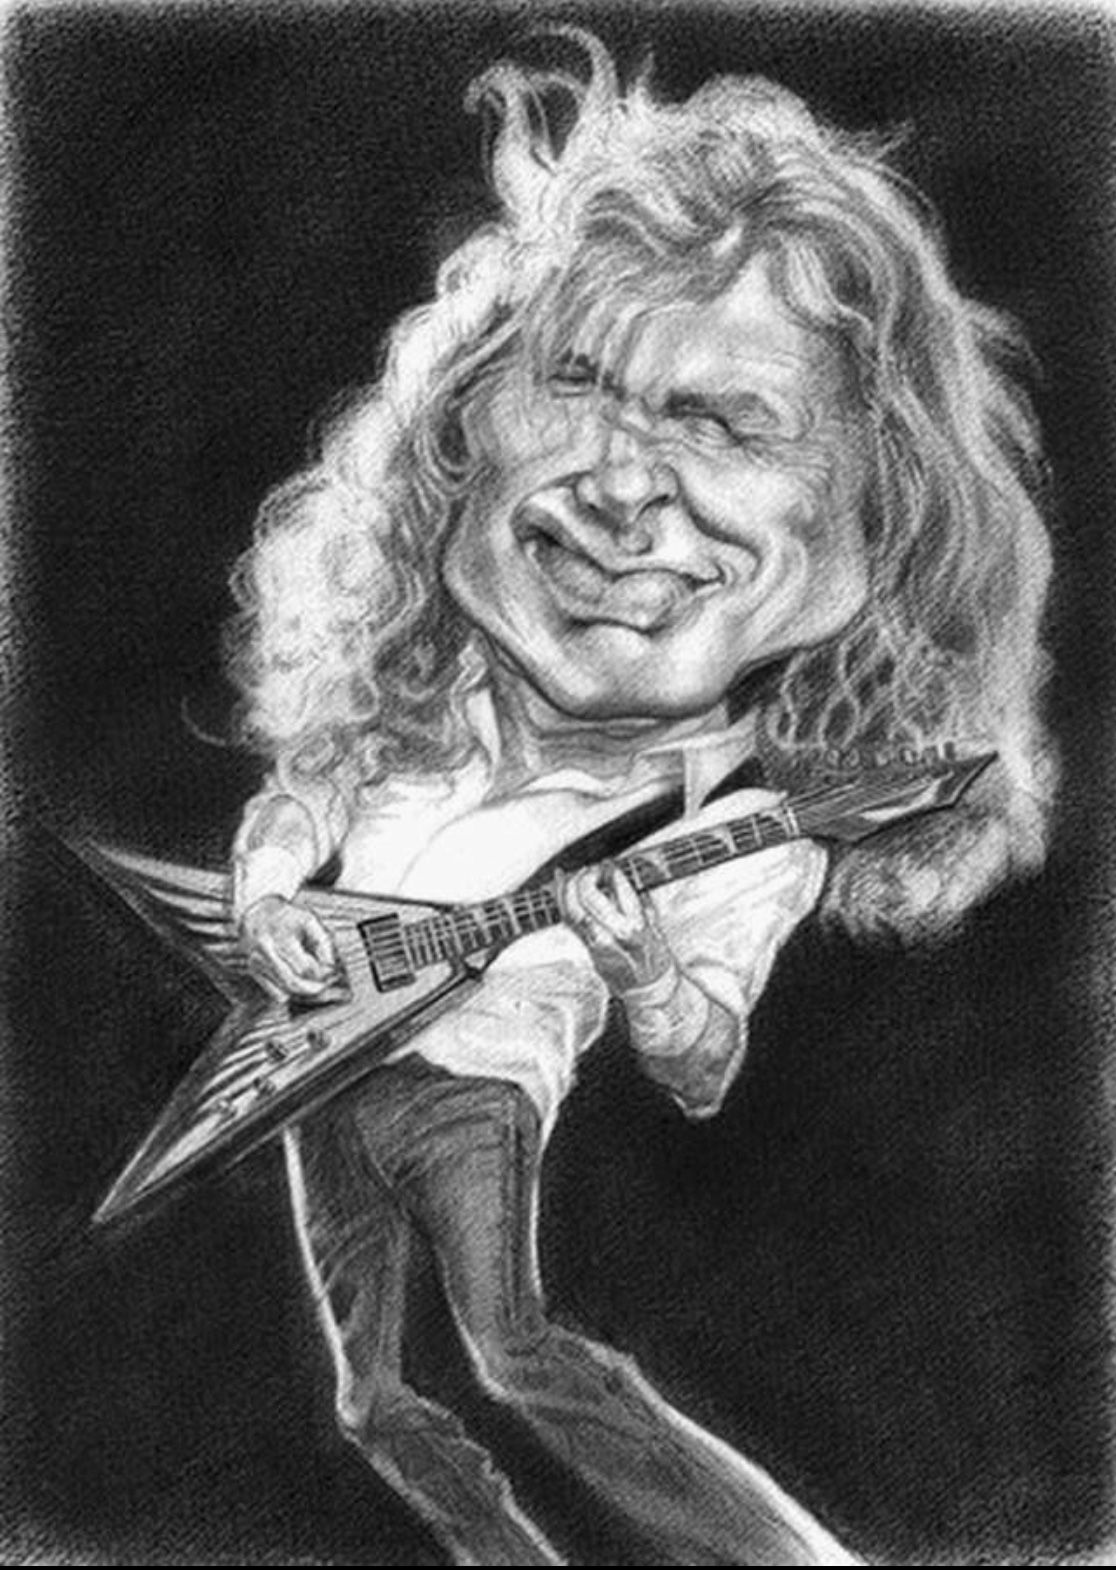 Dave Mustaine Megadeath Printed Canvas Picture Multiple Sizes Heavy Metal Guitar